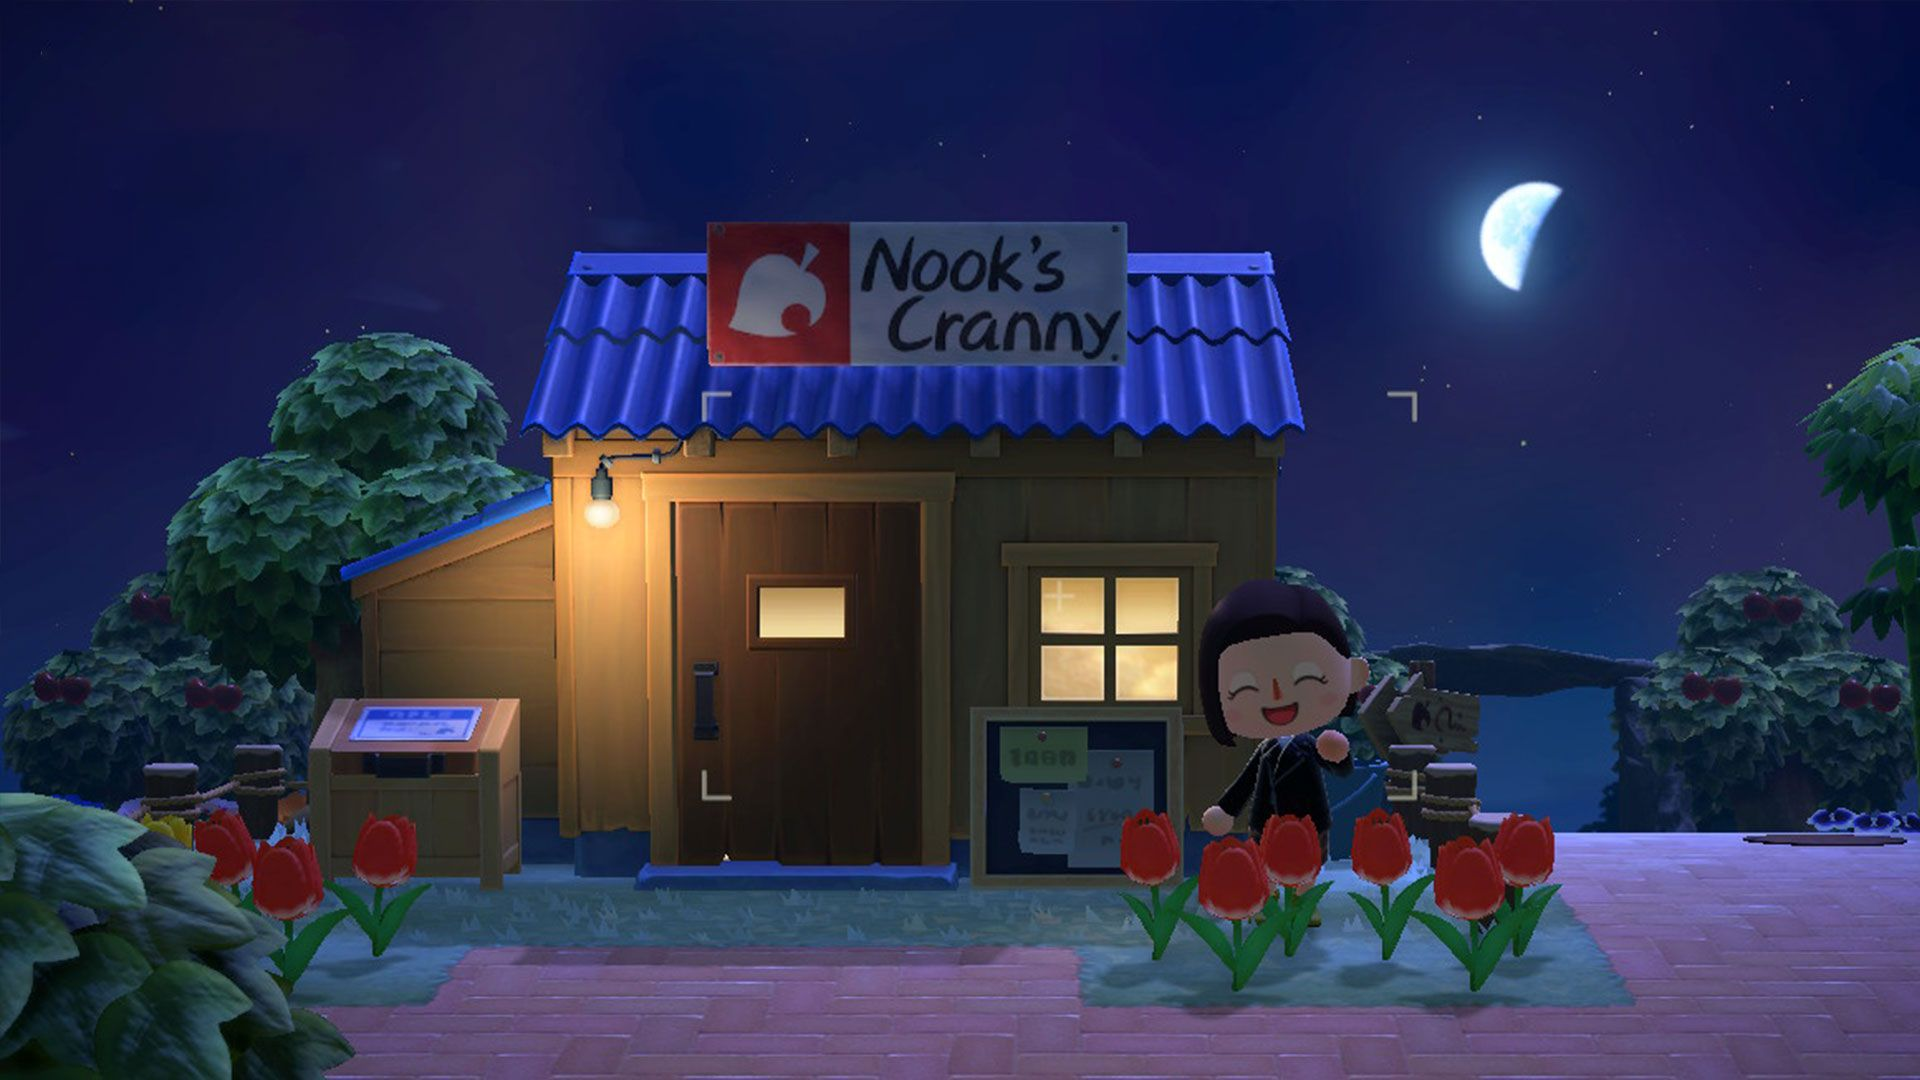 14+ Animal crossing sell prices images